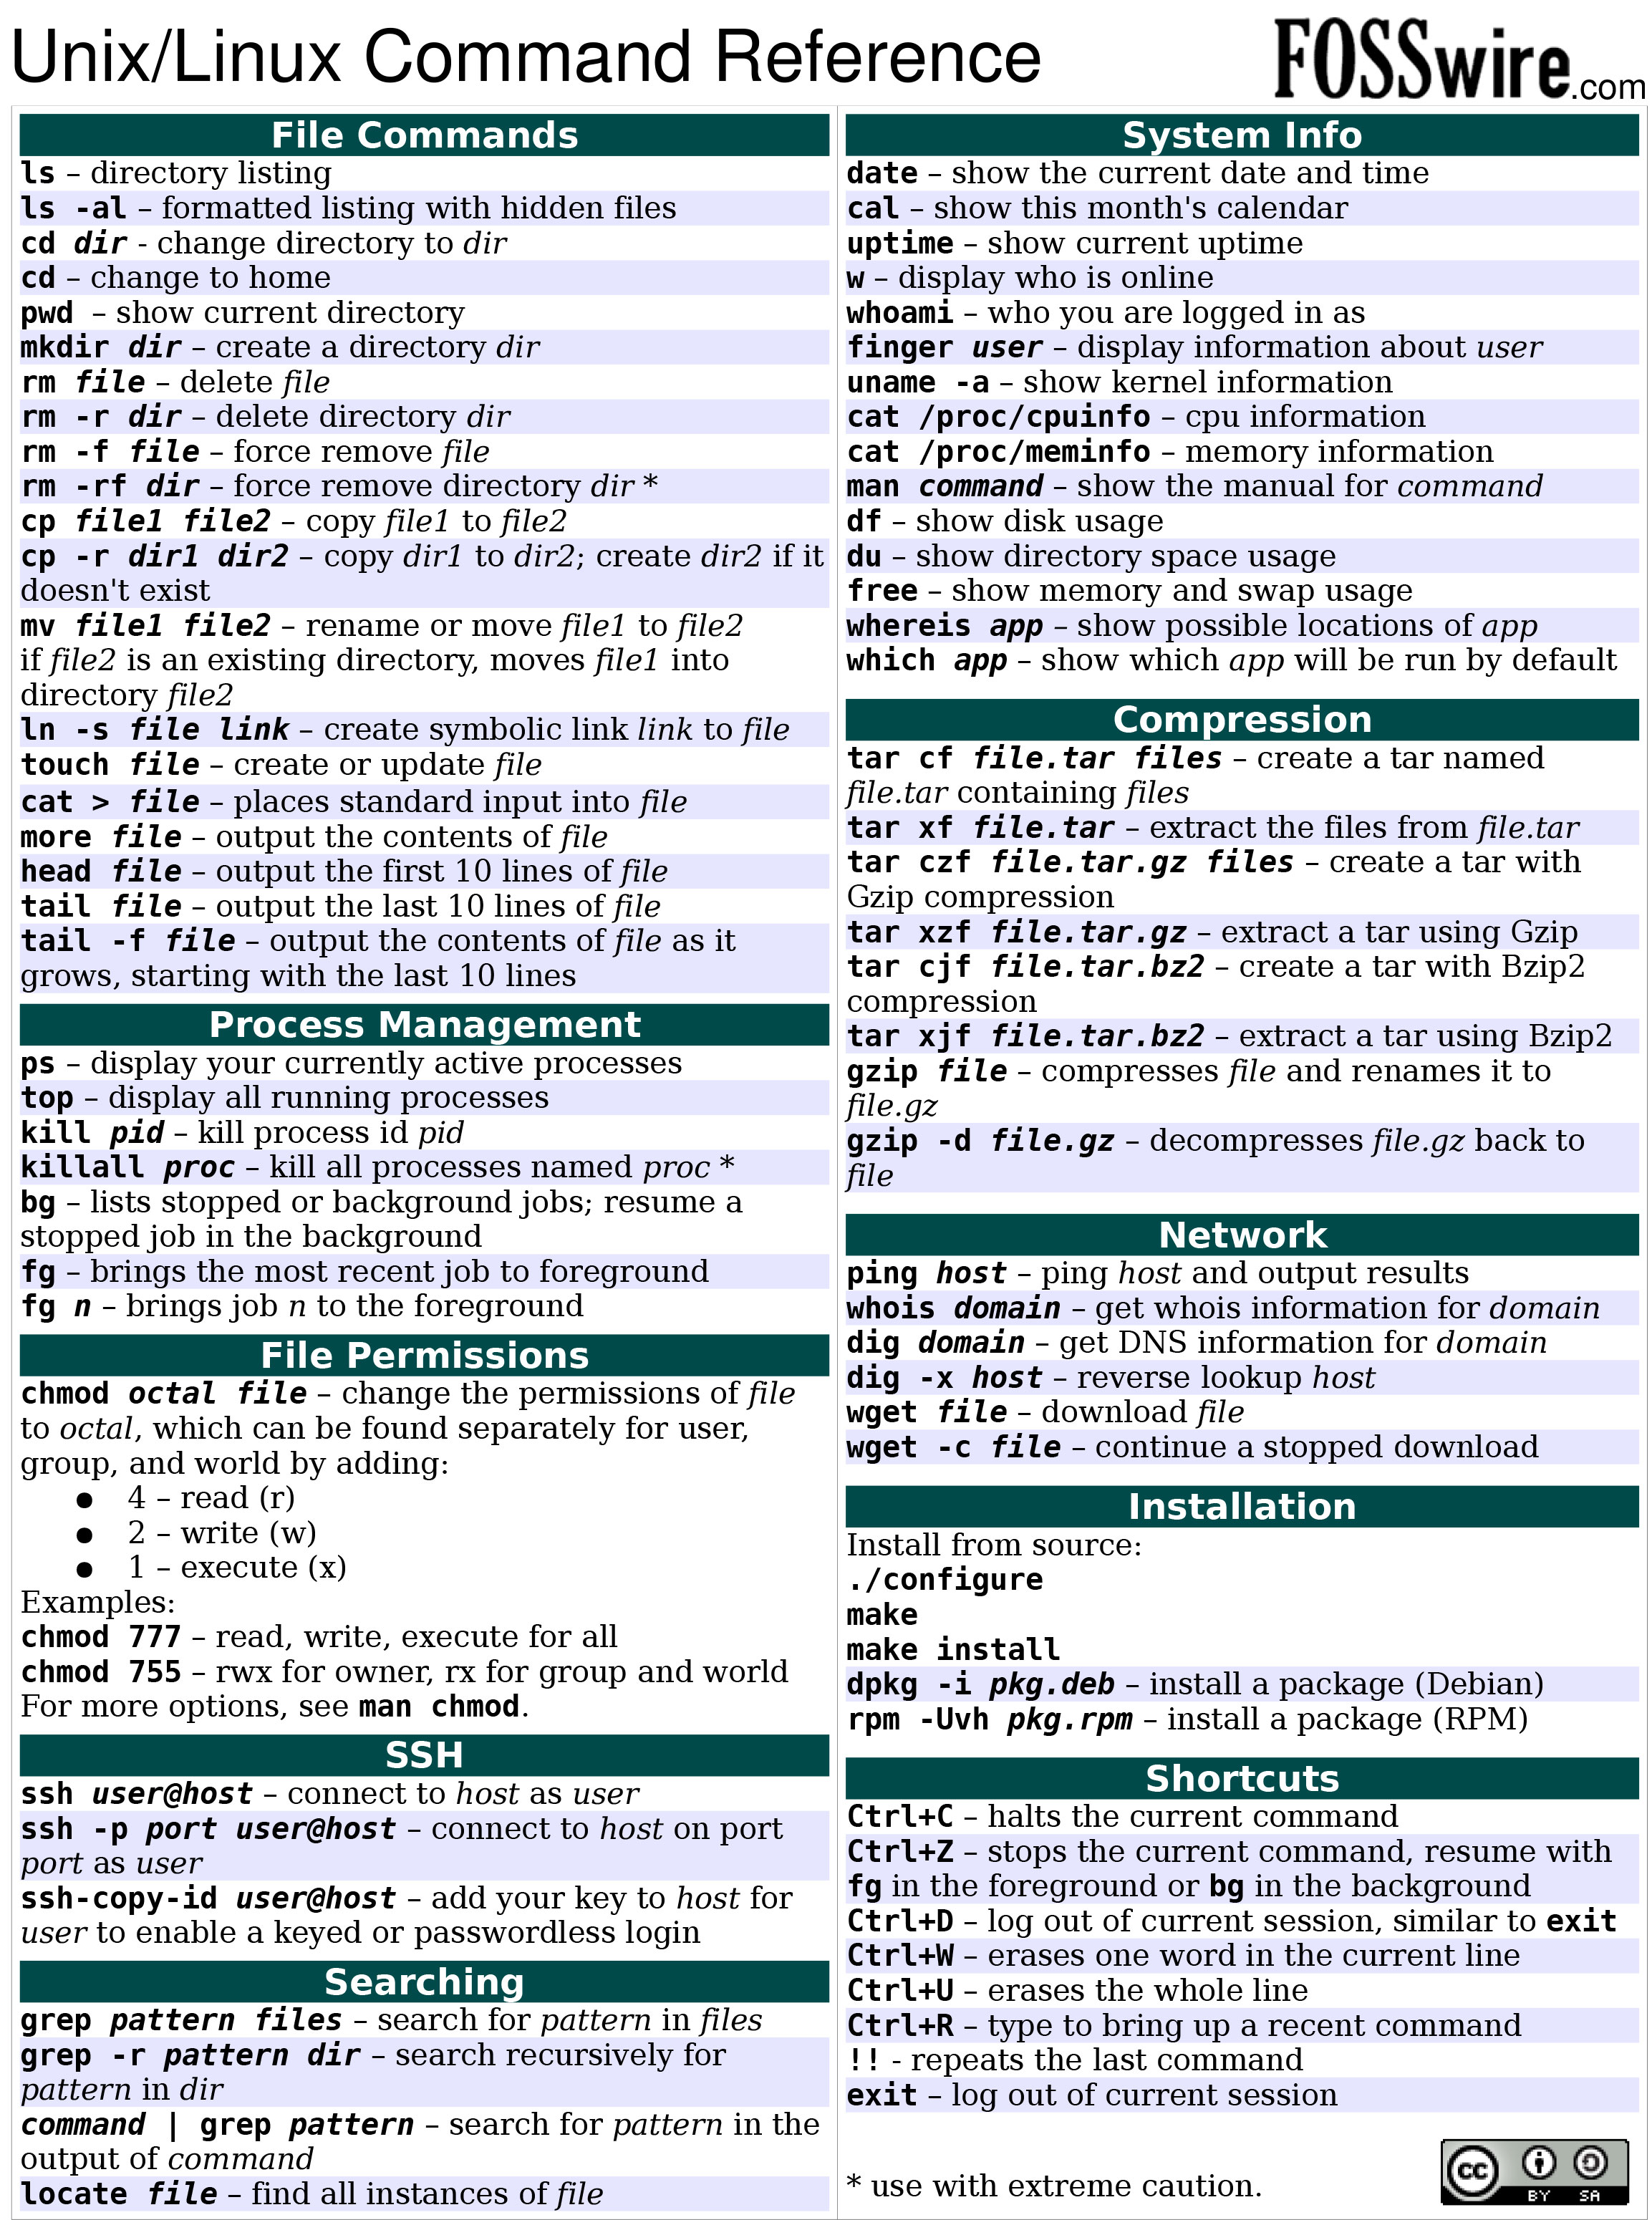 cheat sheet all cheat sheets in one page